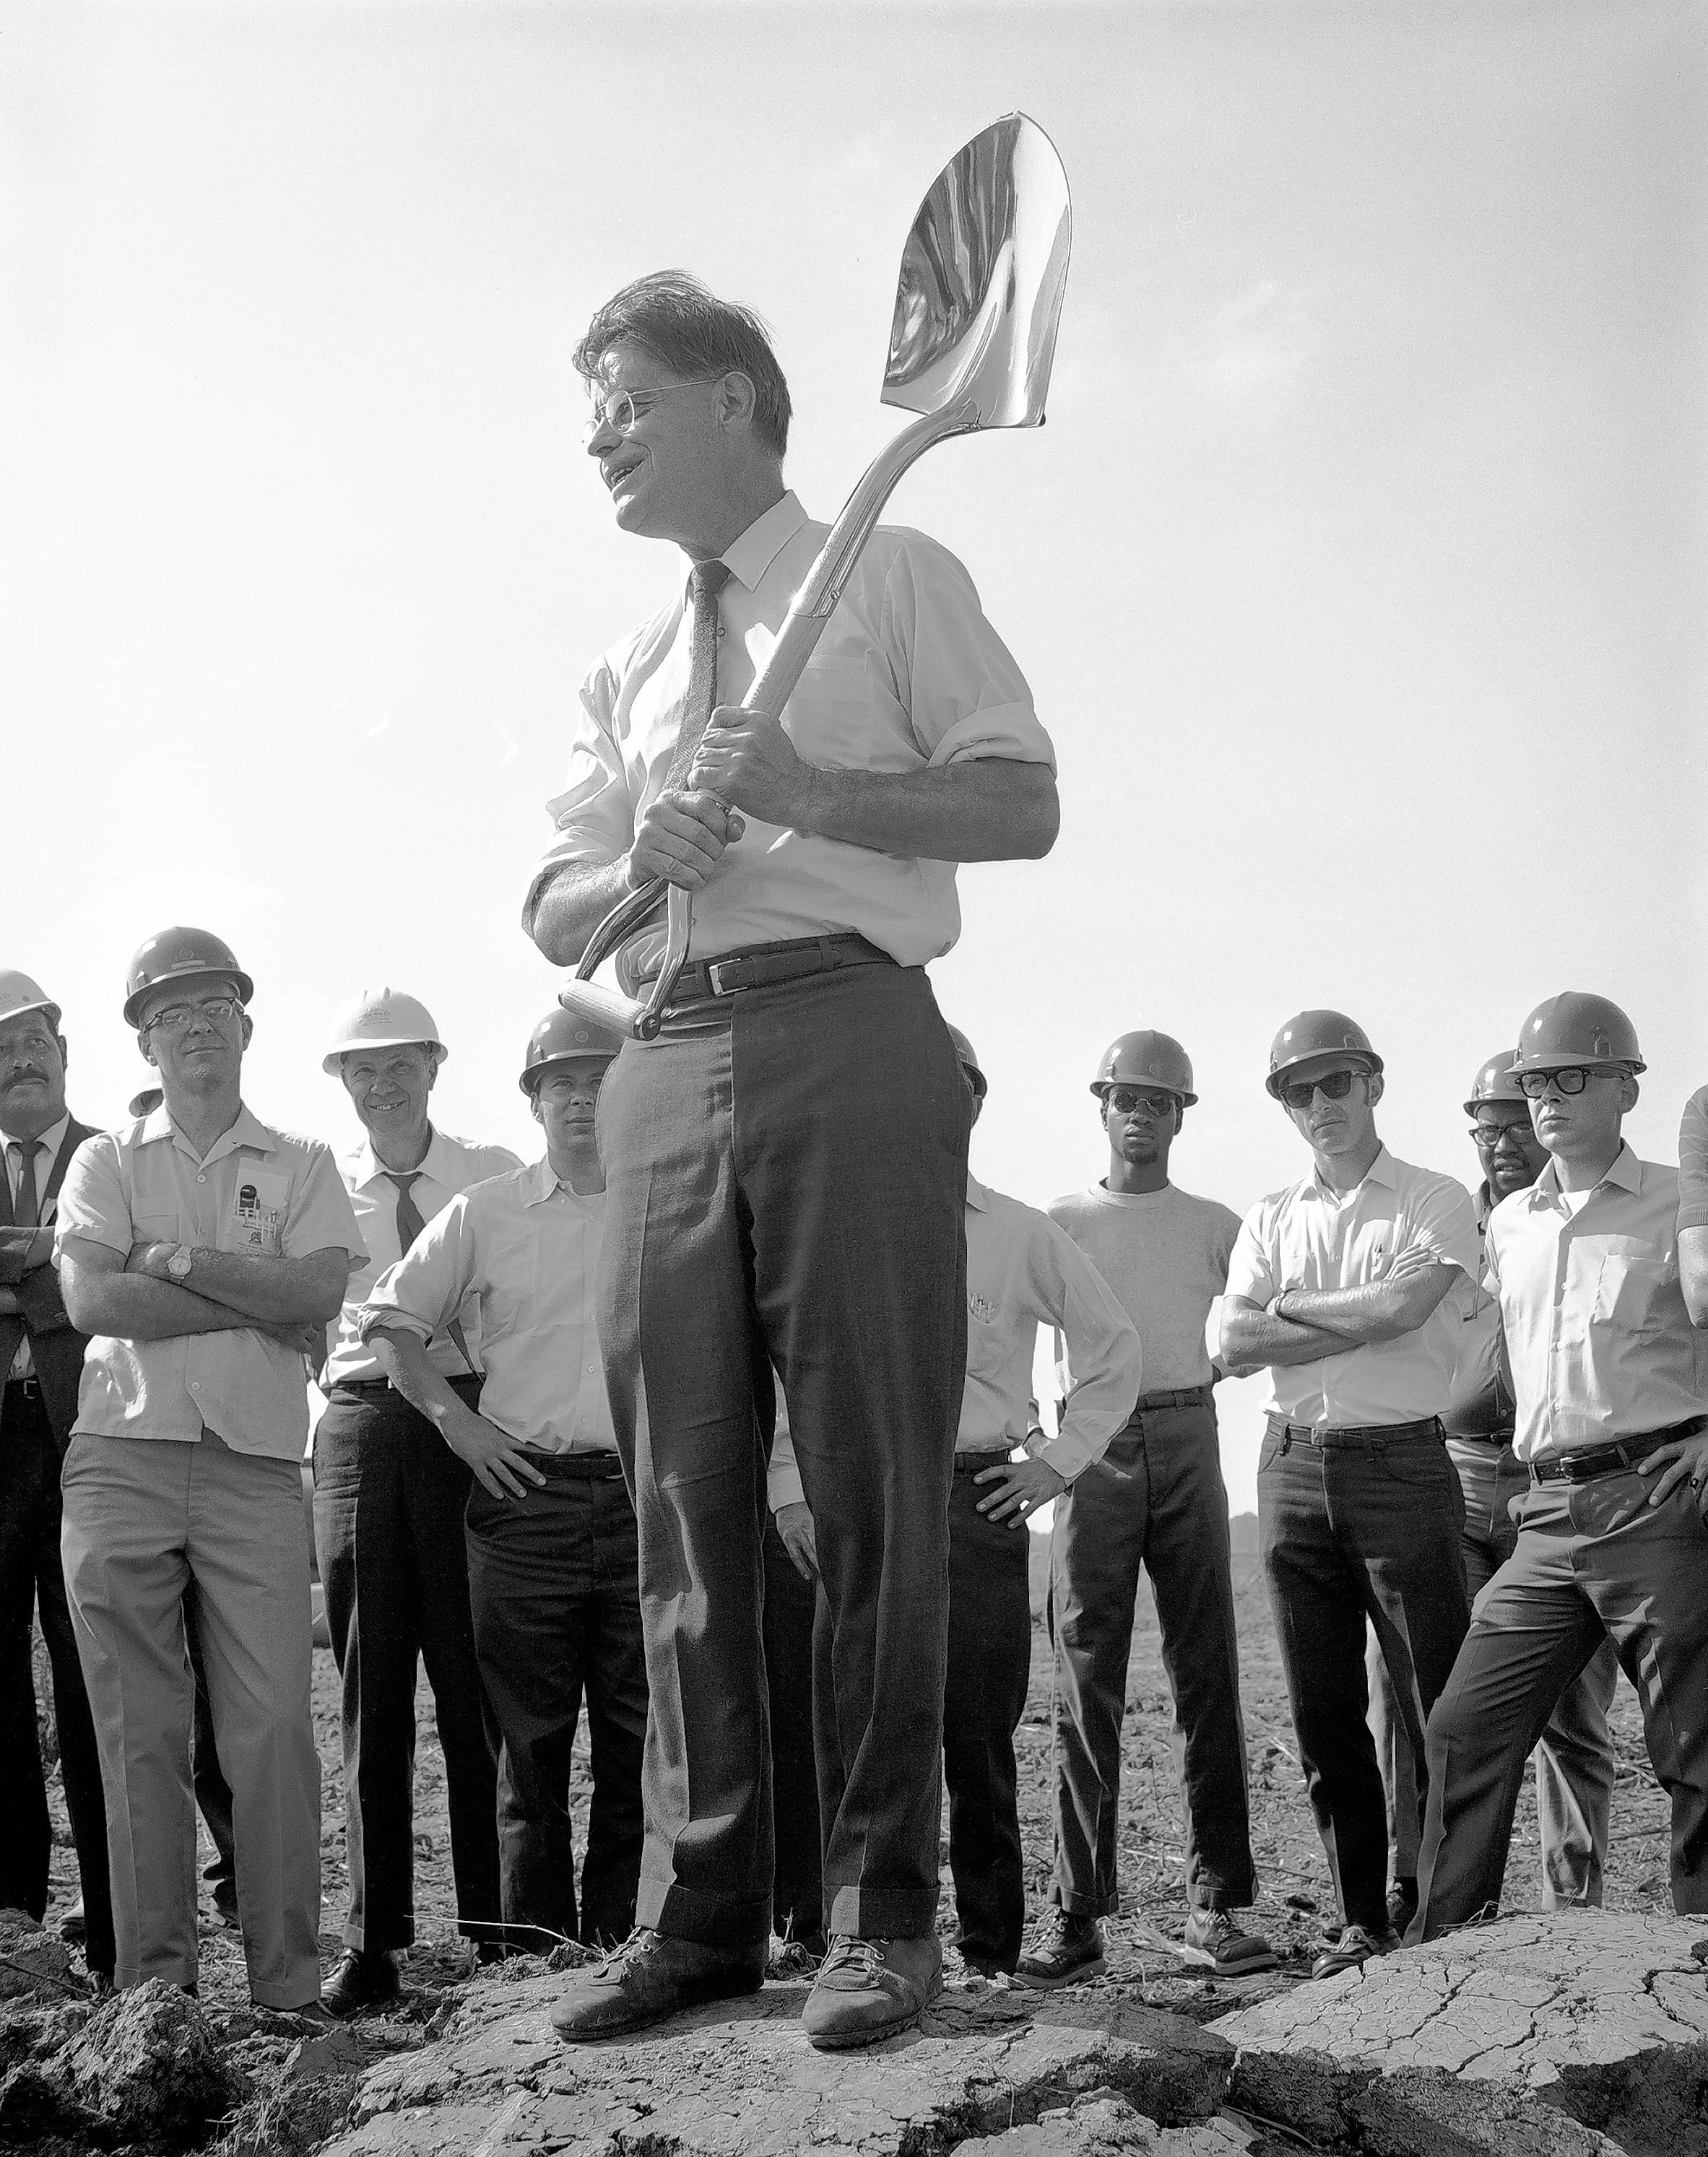 Fermilab's first director, Robert Wilson, is shown at a 1969 groundbreaking ceremony for the research lab's Main Ring.